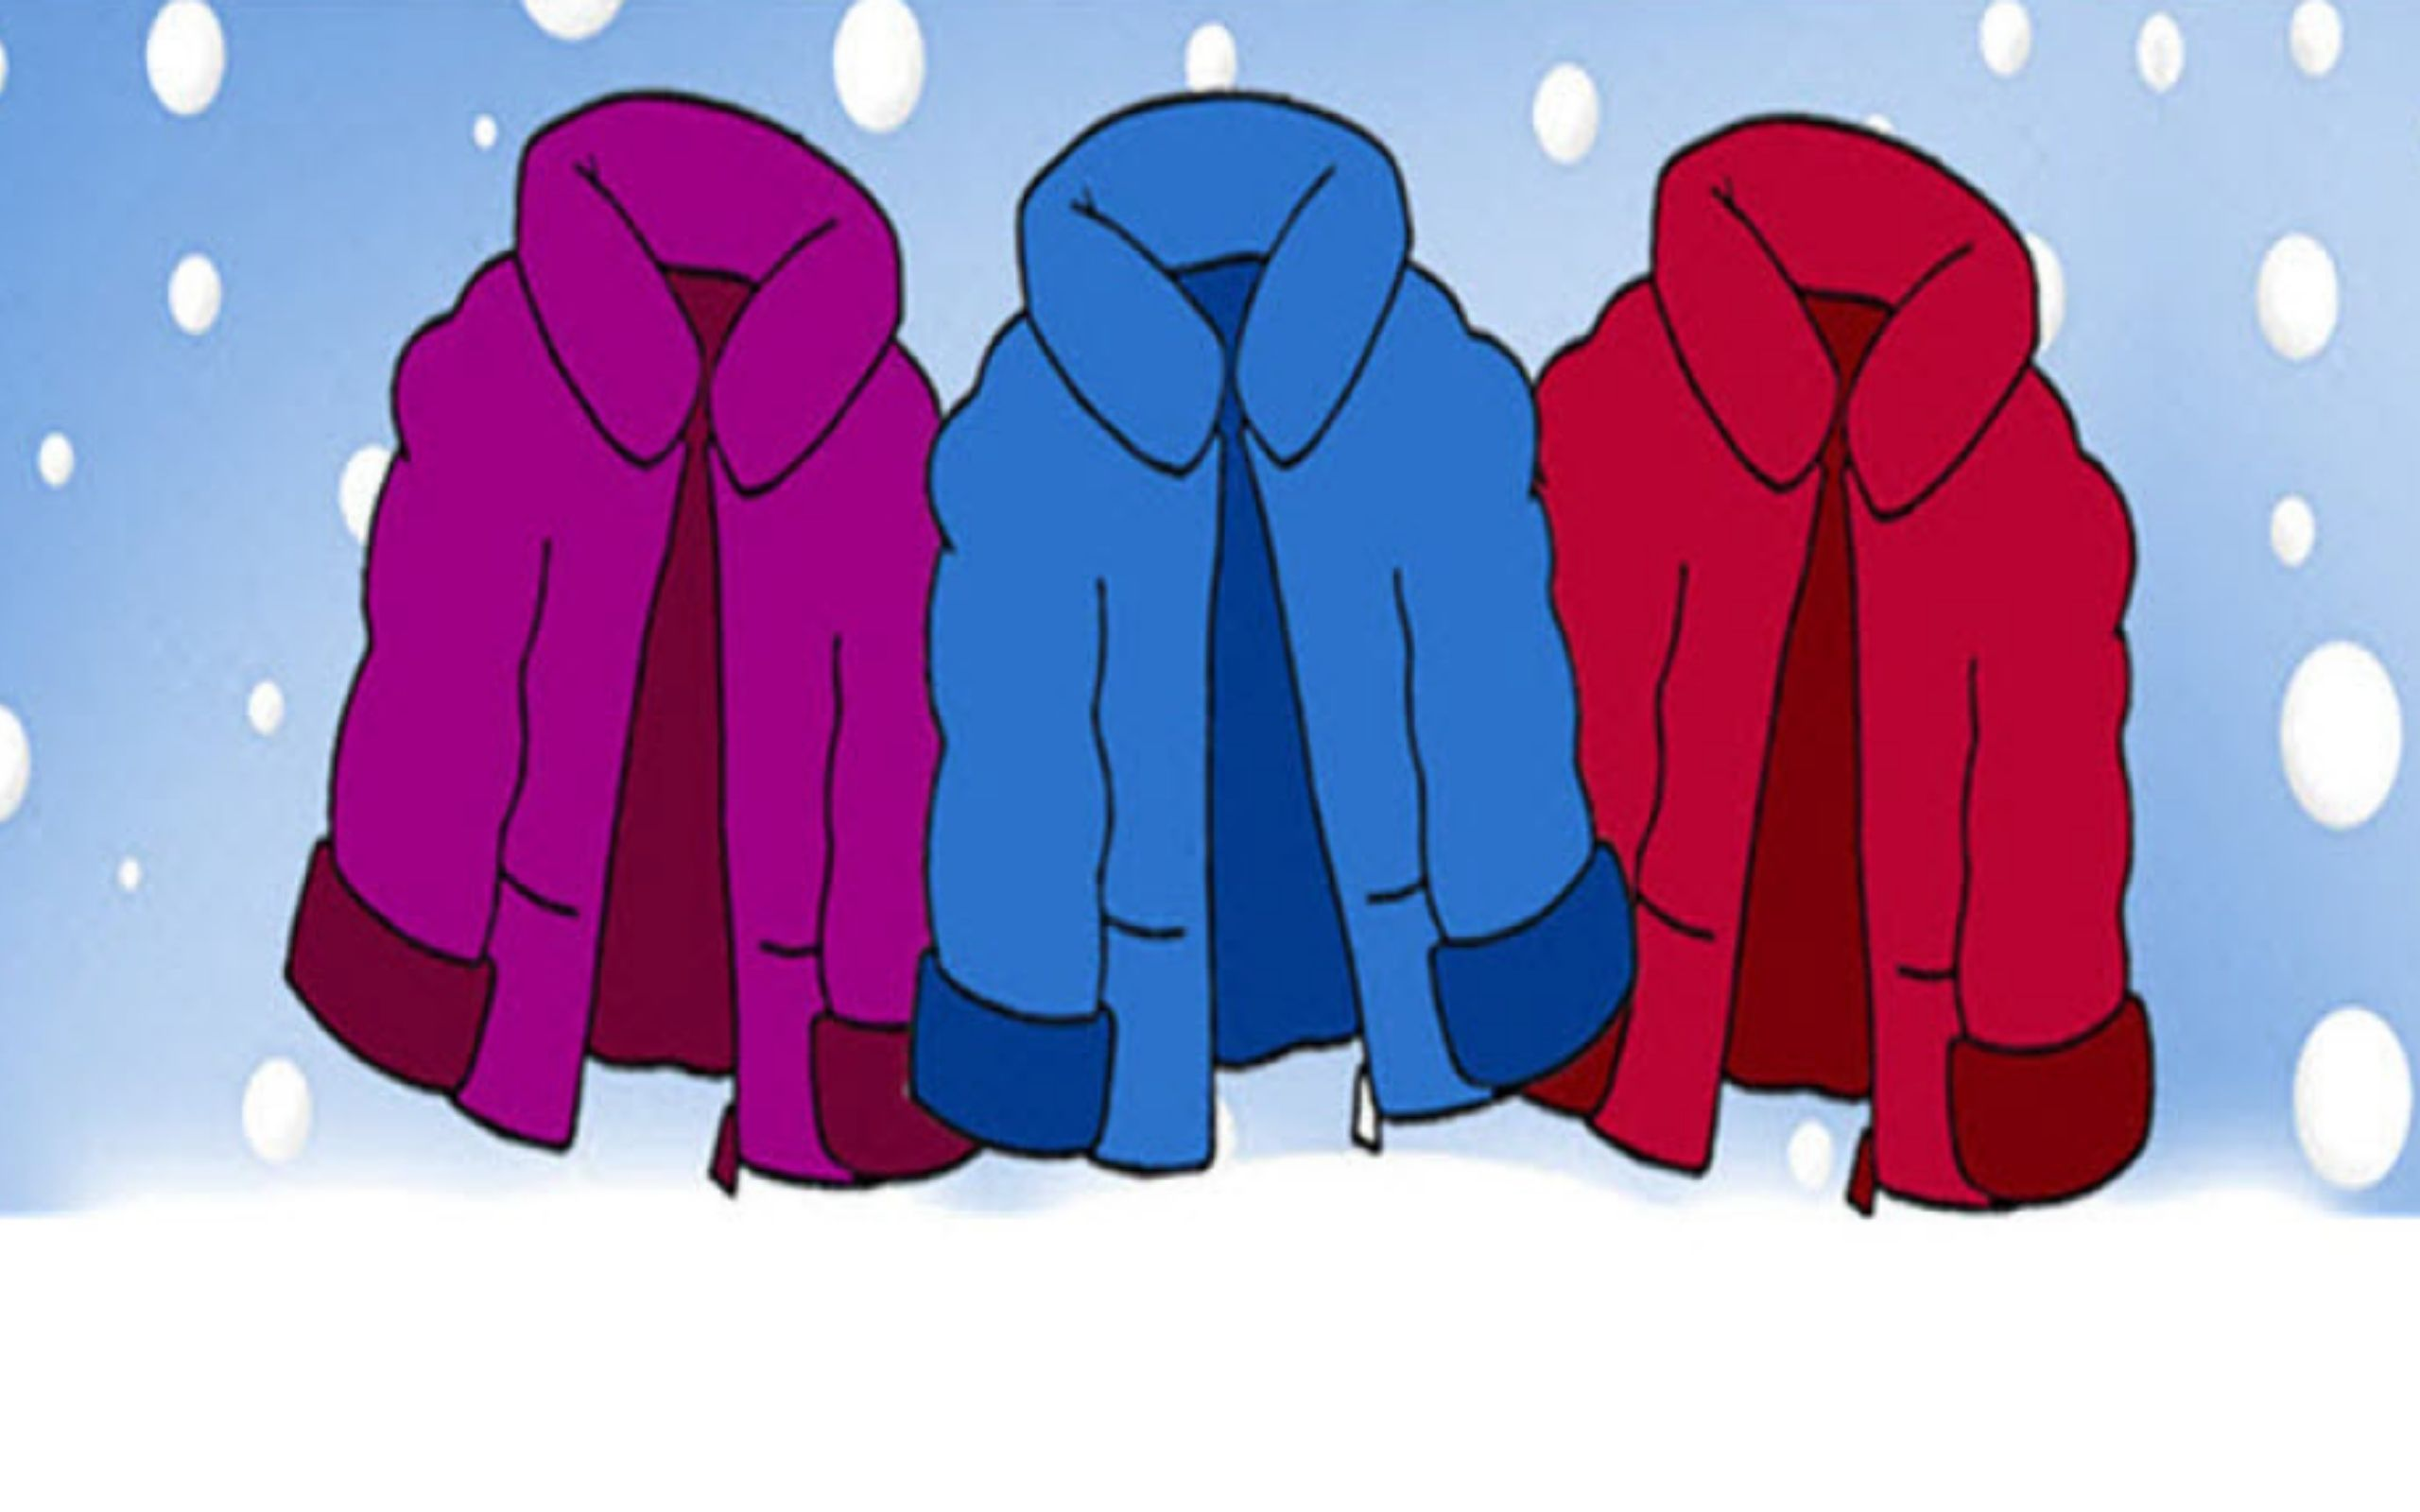 cartoon coats in front of a snowy backdrop